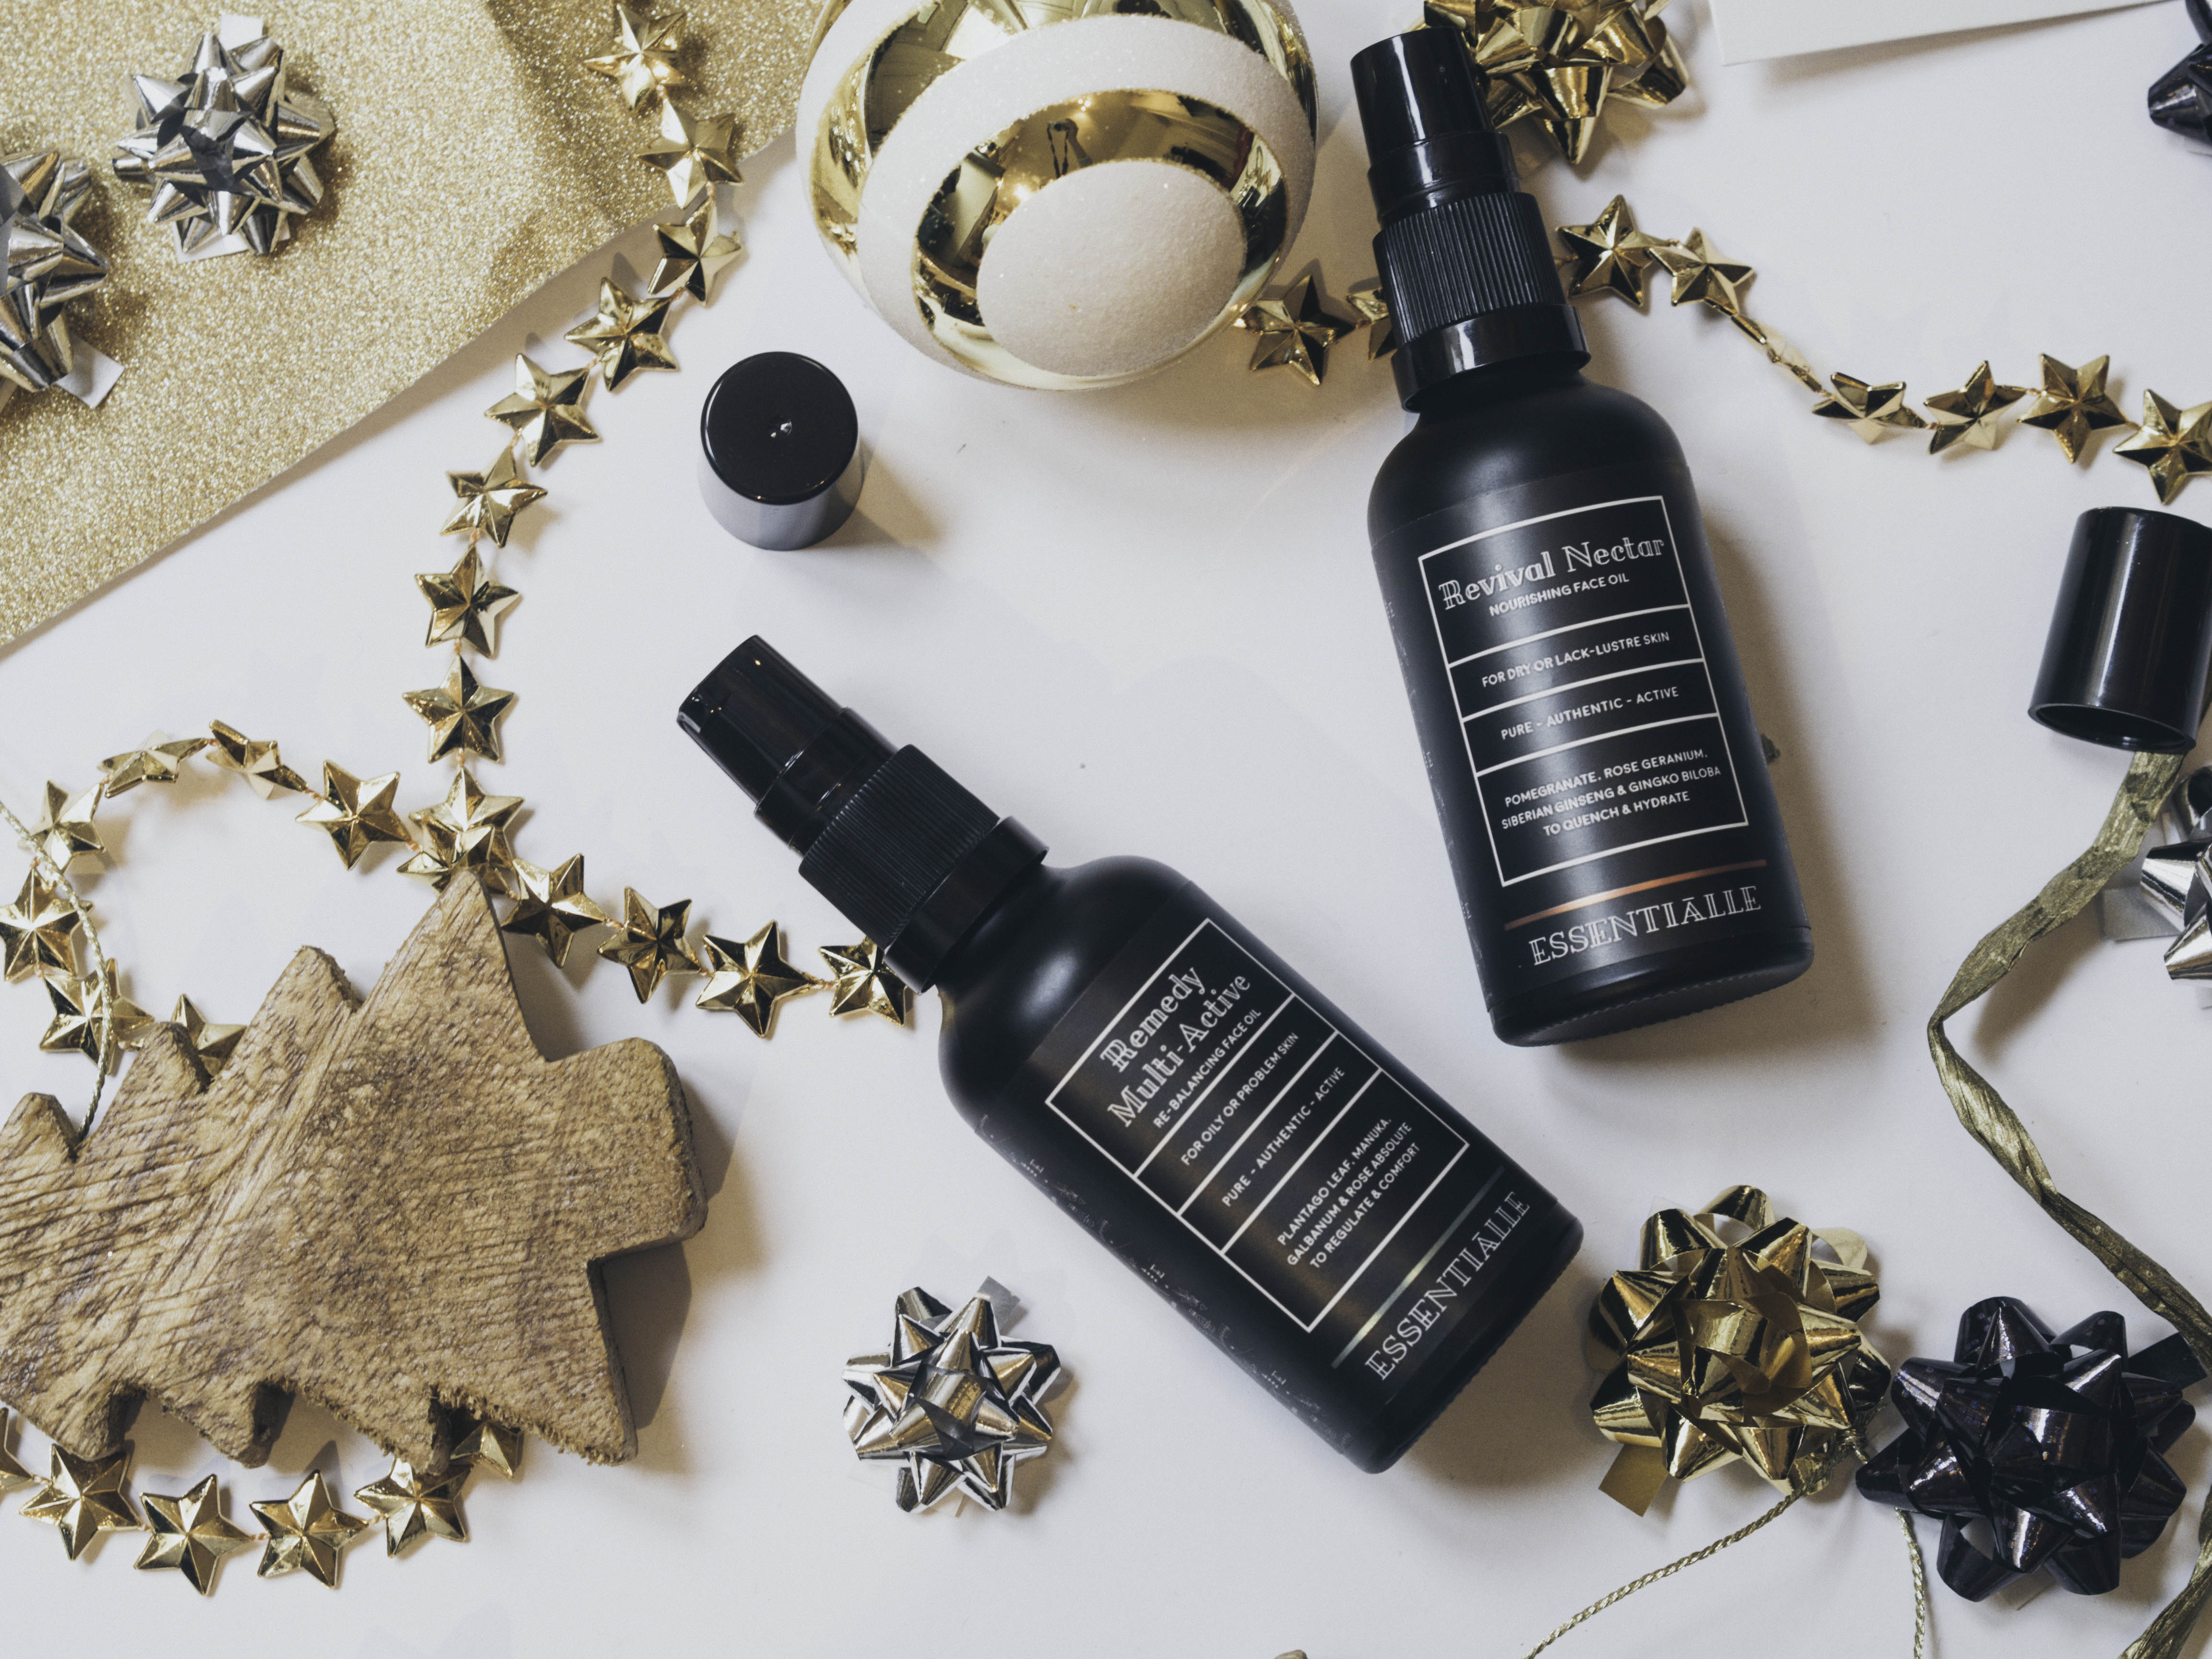 Essentialle facial oil New year - New winter skincare routine!